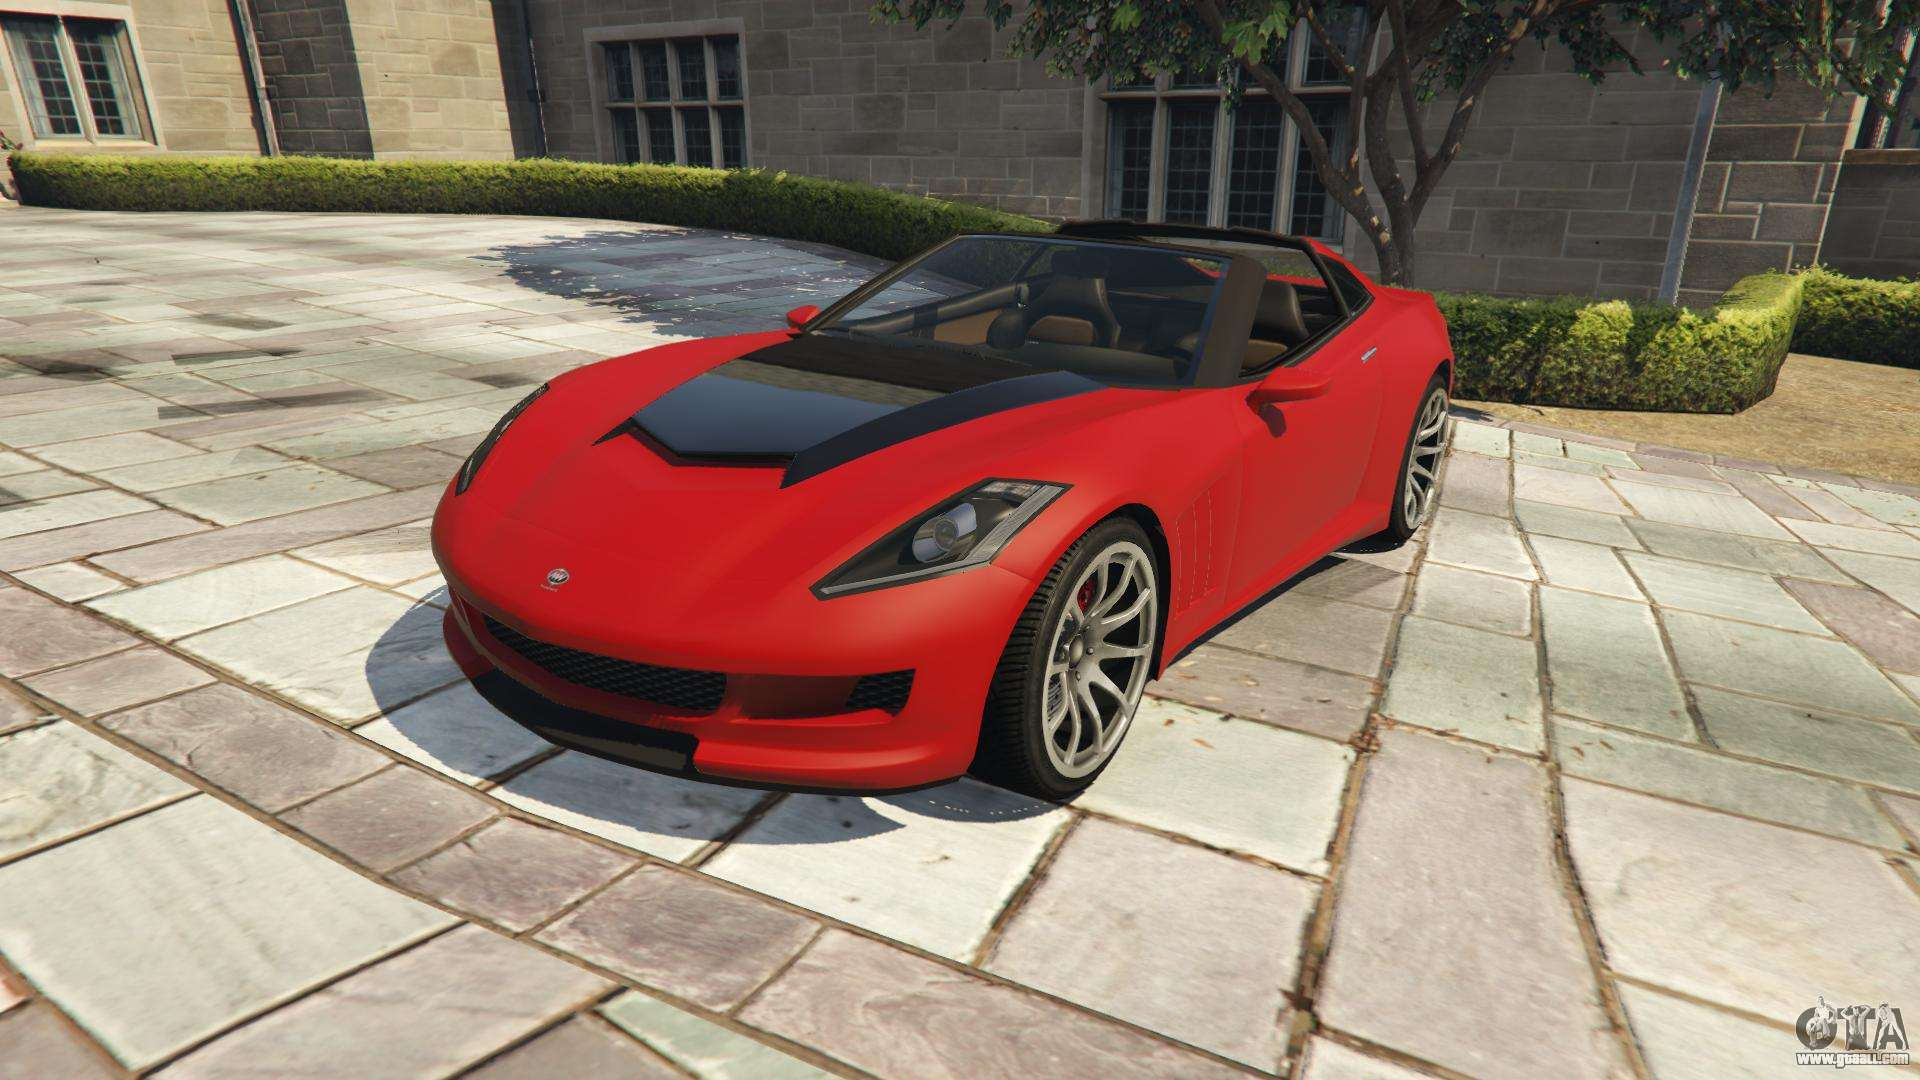 Invetero Coquette from GTA 5 - front view